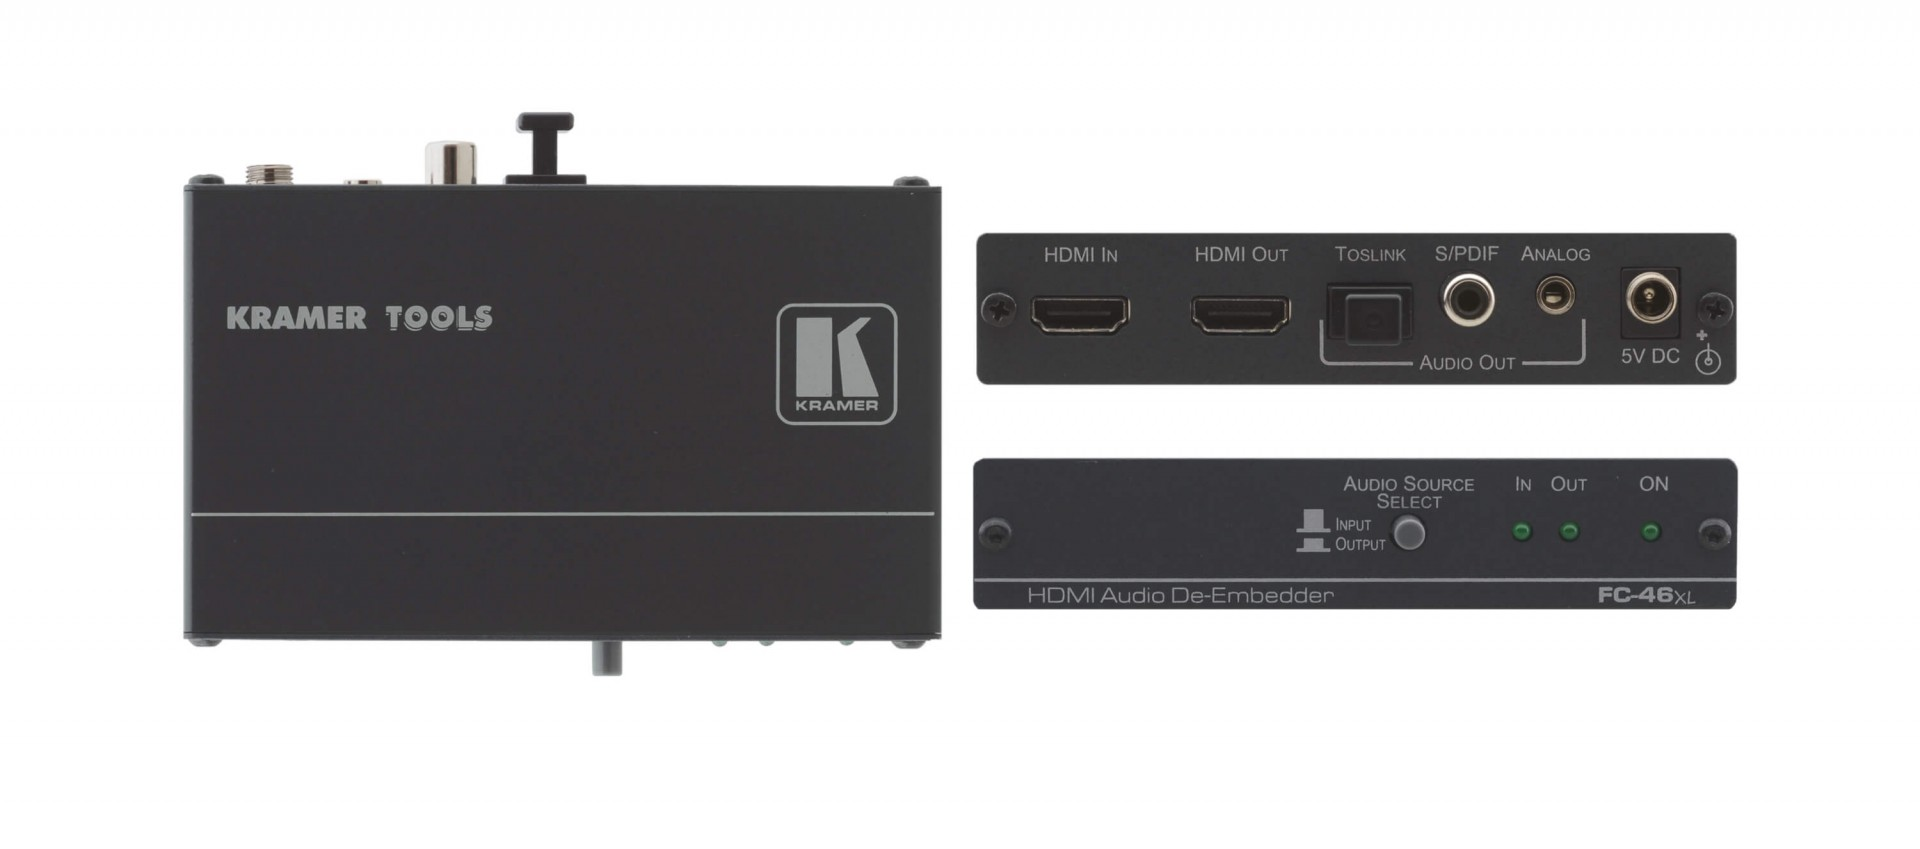 Kramer FC-46xl HDMI Audio De–Embedder